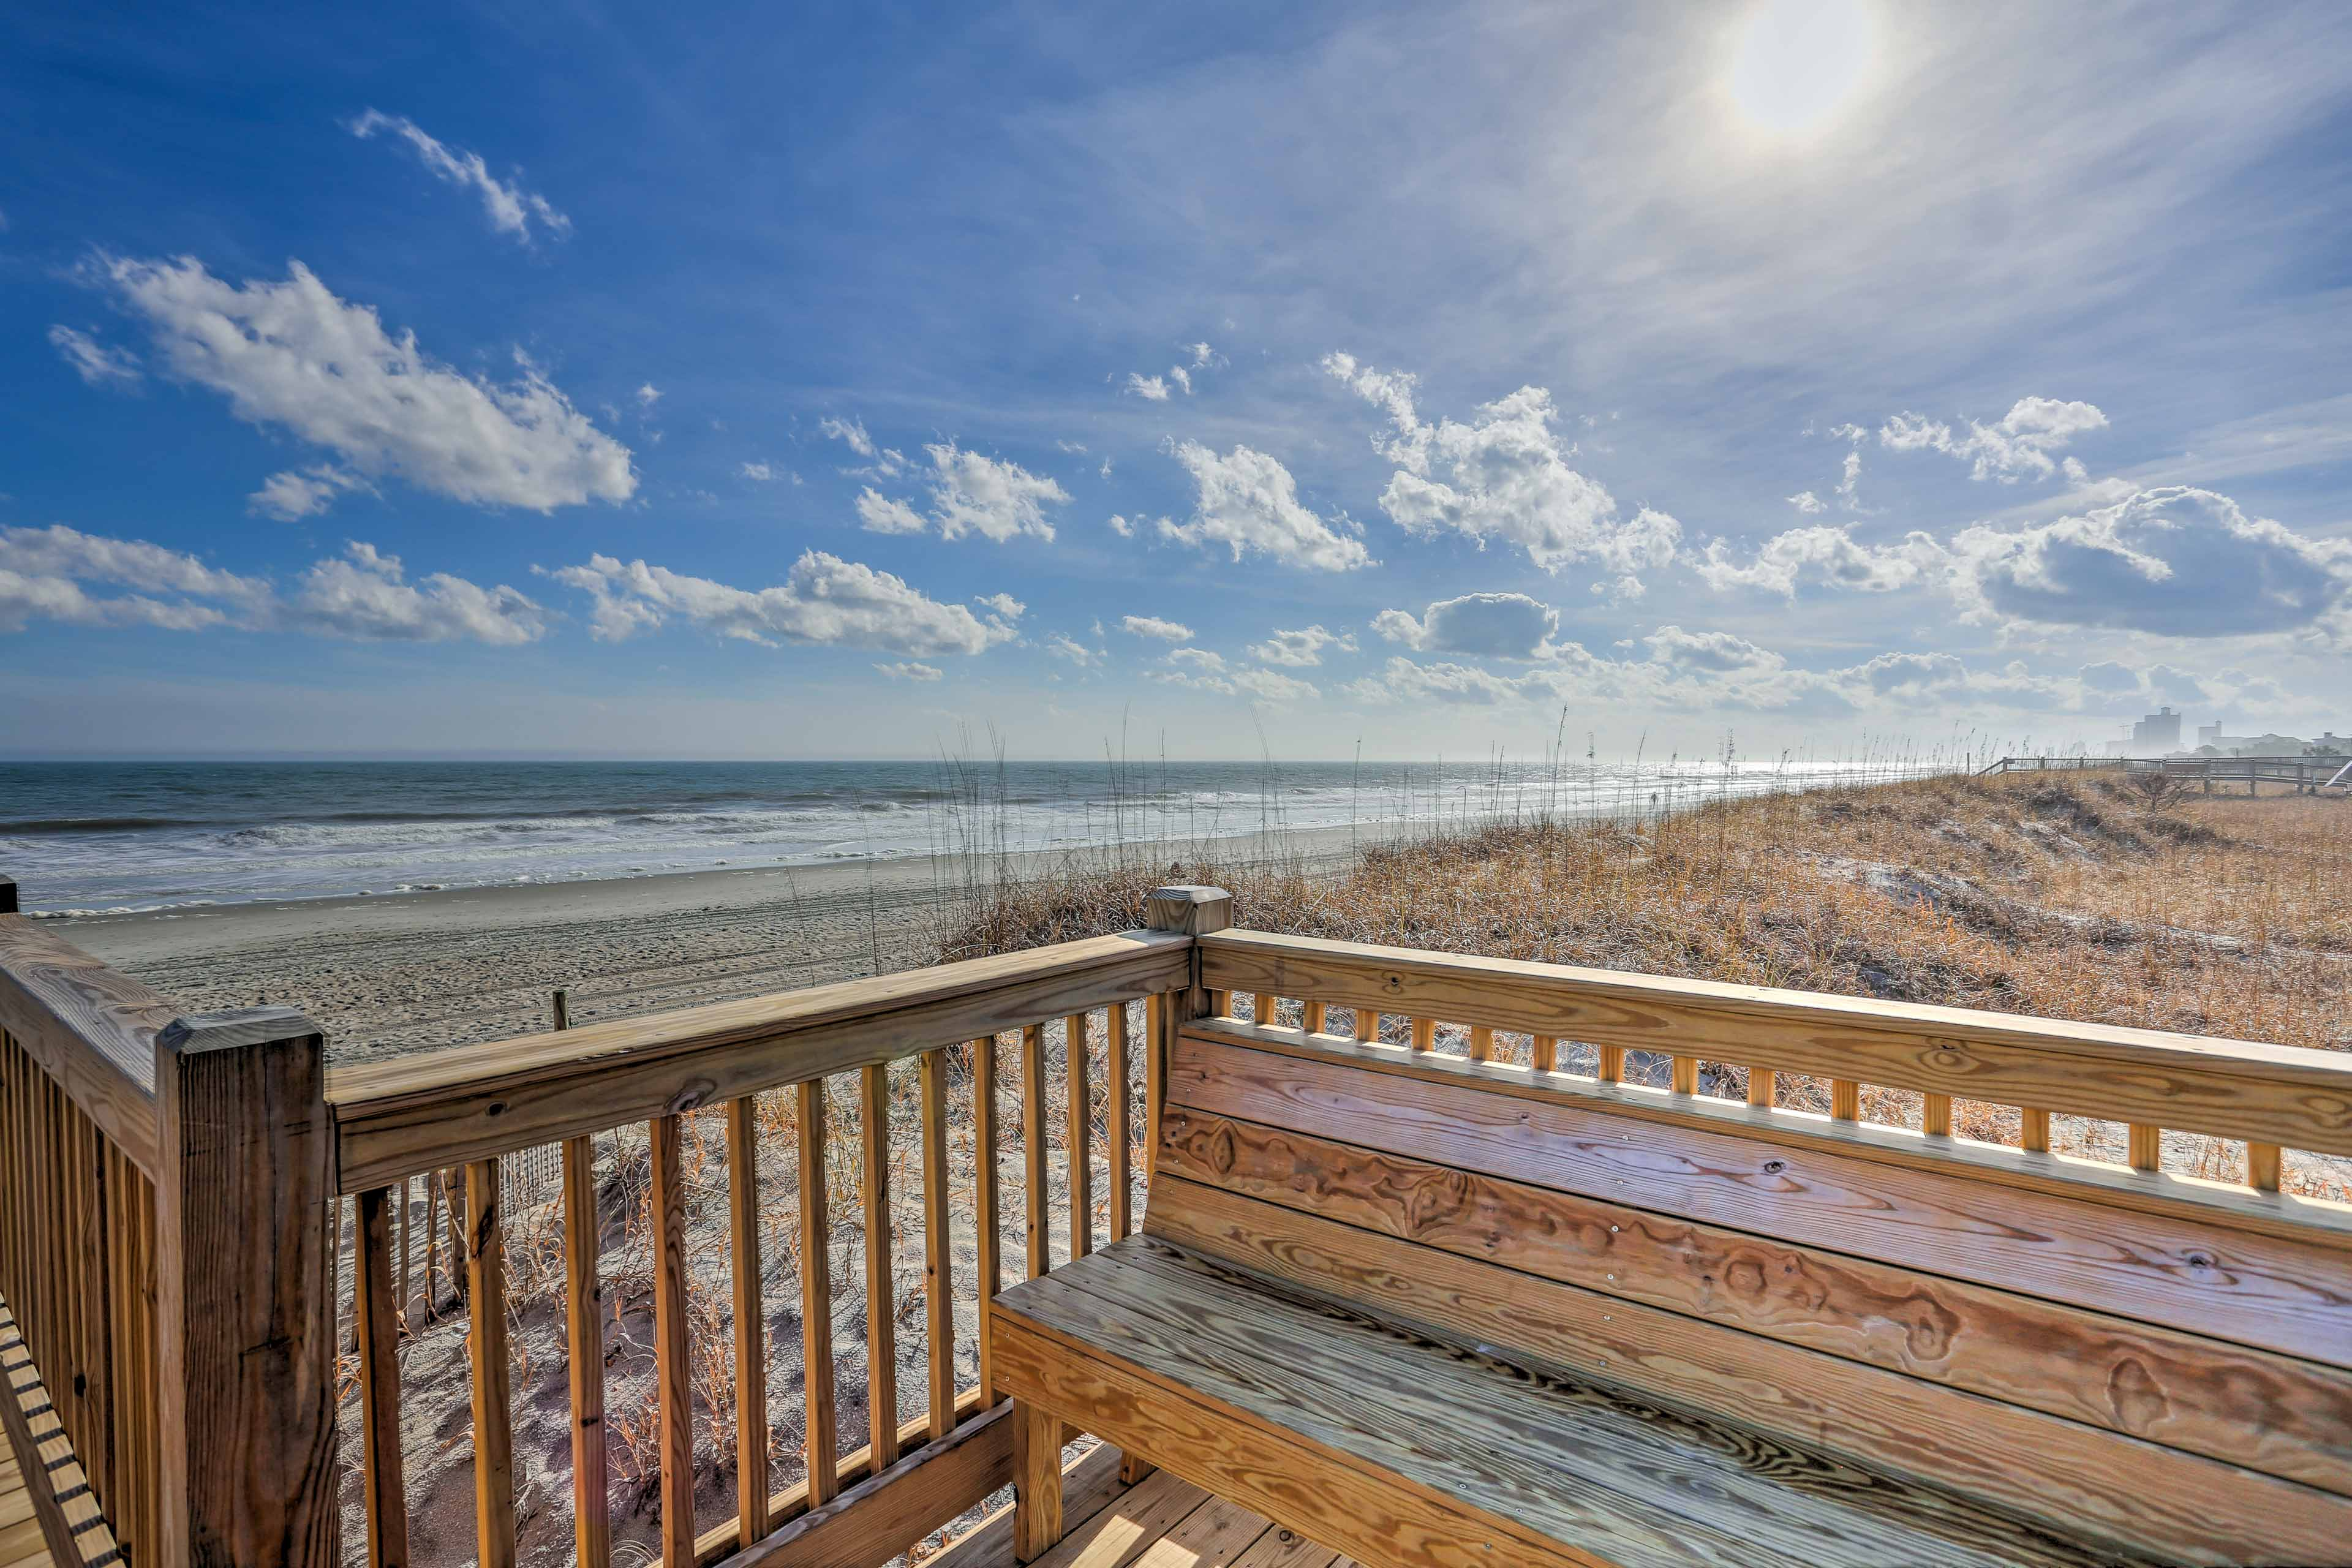 Book your Myrtle Beach holiday today!